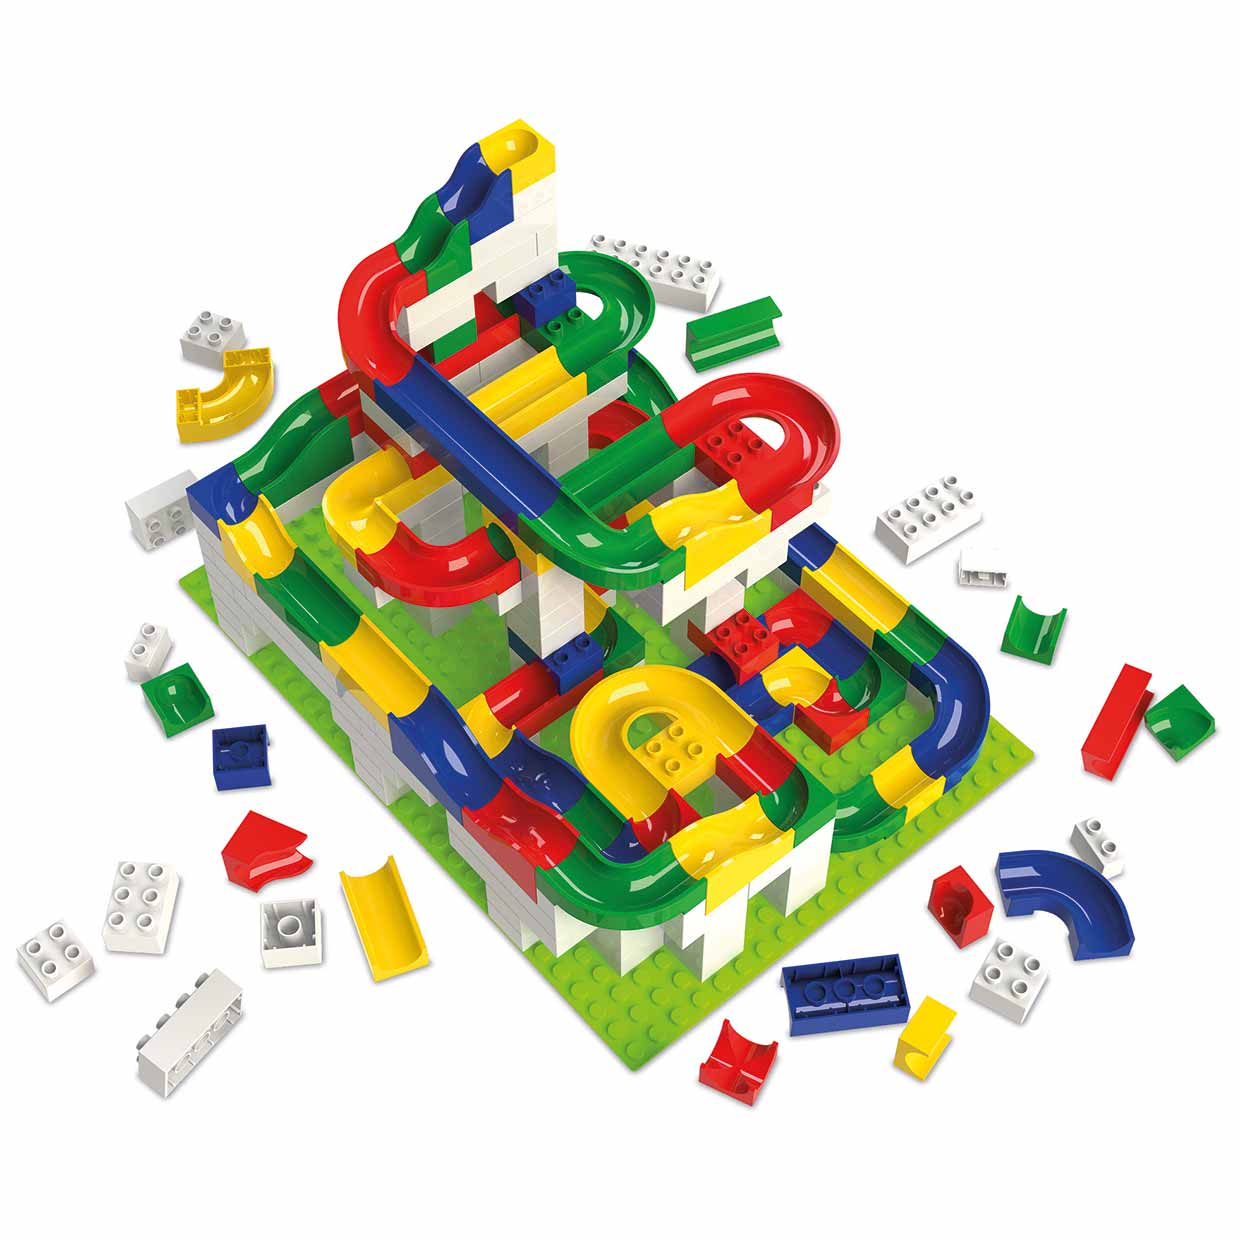 Toys For 4 : Hubelino marble run for kids made in germany